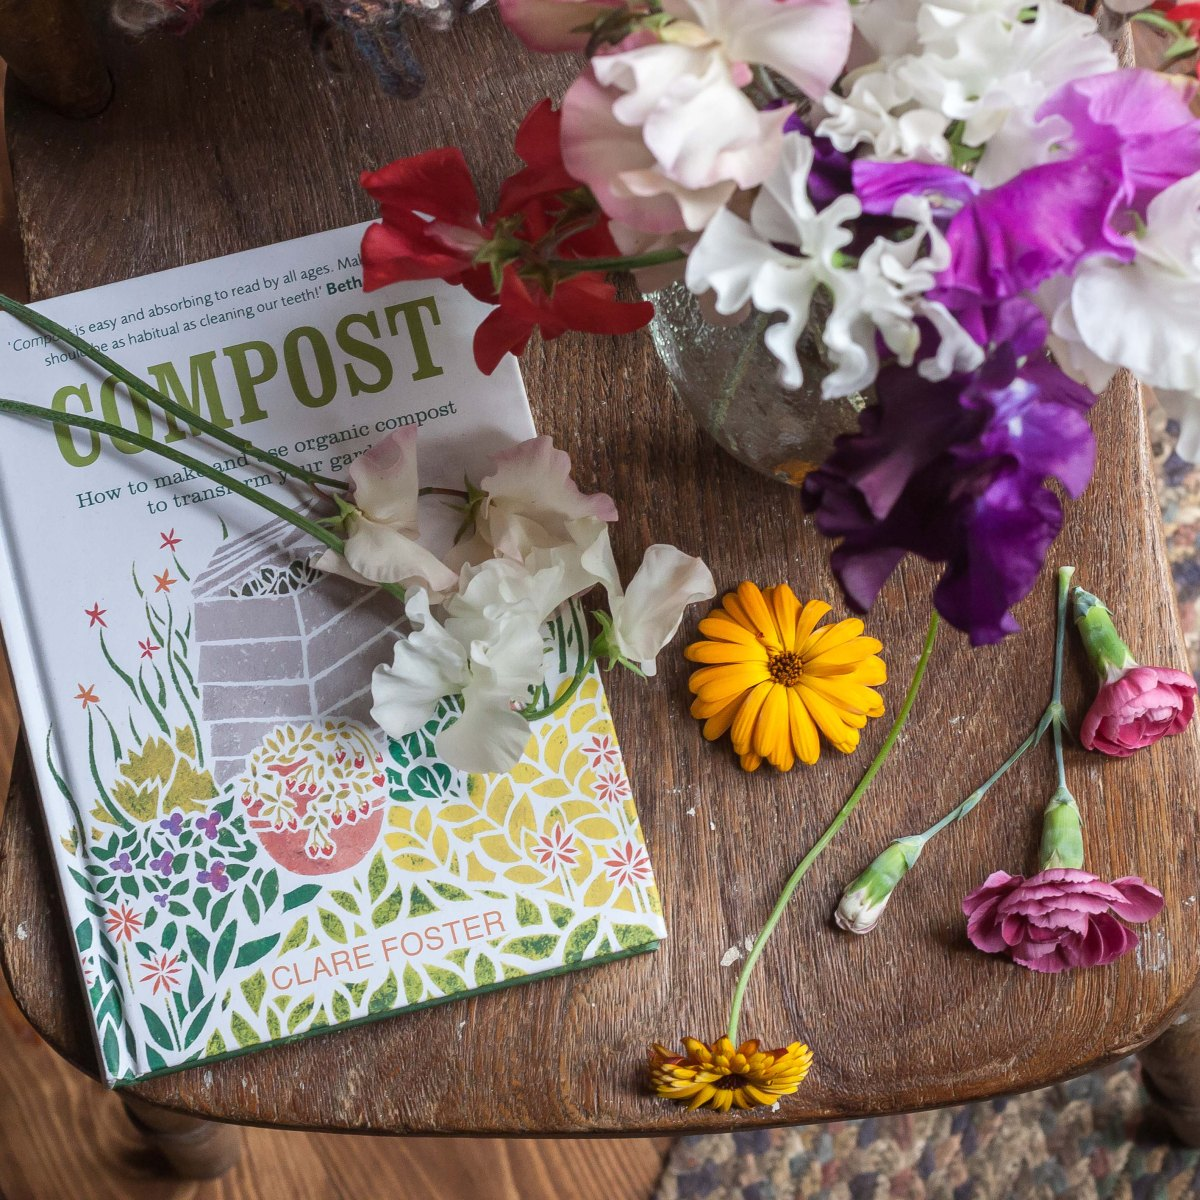 Book review: 'Compost' by ClareFoster